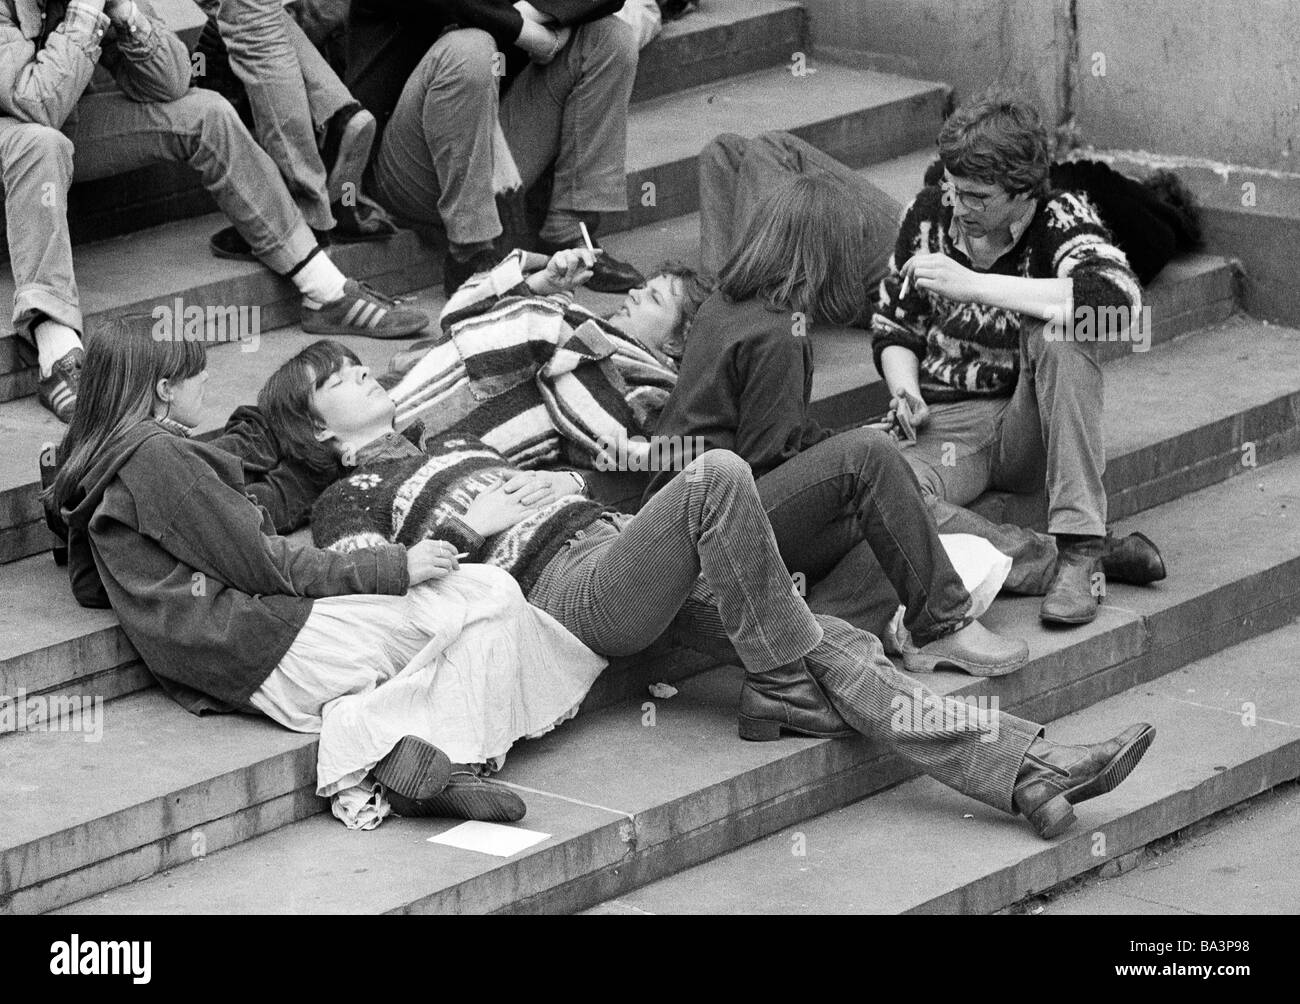 Seventies, black and white photo, people, teenagers sitting on stairs, group of people, leasurewear, long-haired, - Stock Image